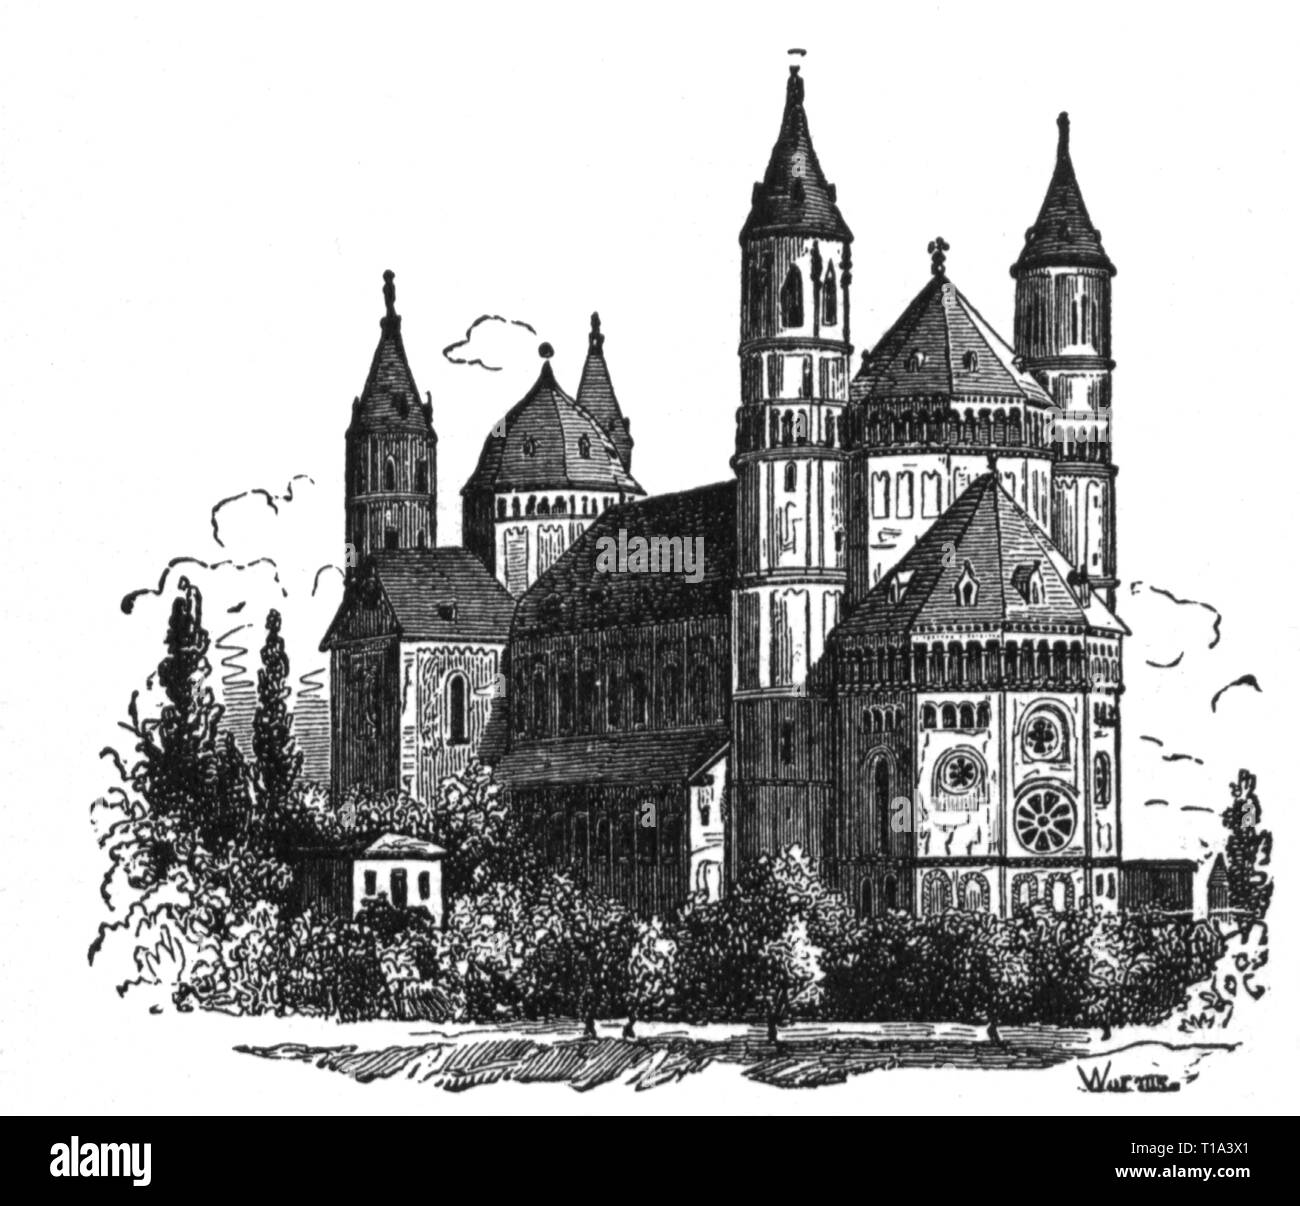 geography / travel historic, Germany, cities and communities, Worms, churches, cathedral Saint Peter, exterior view, 12, Artist's Copyright has not to be cleared - Stock Image